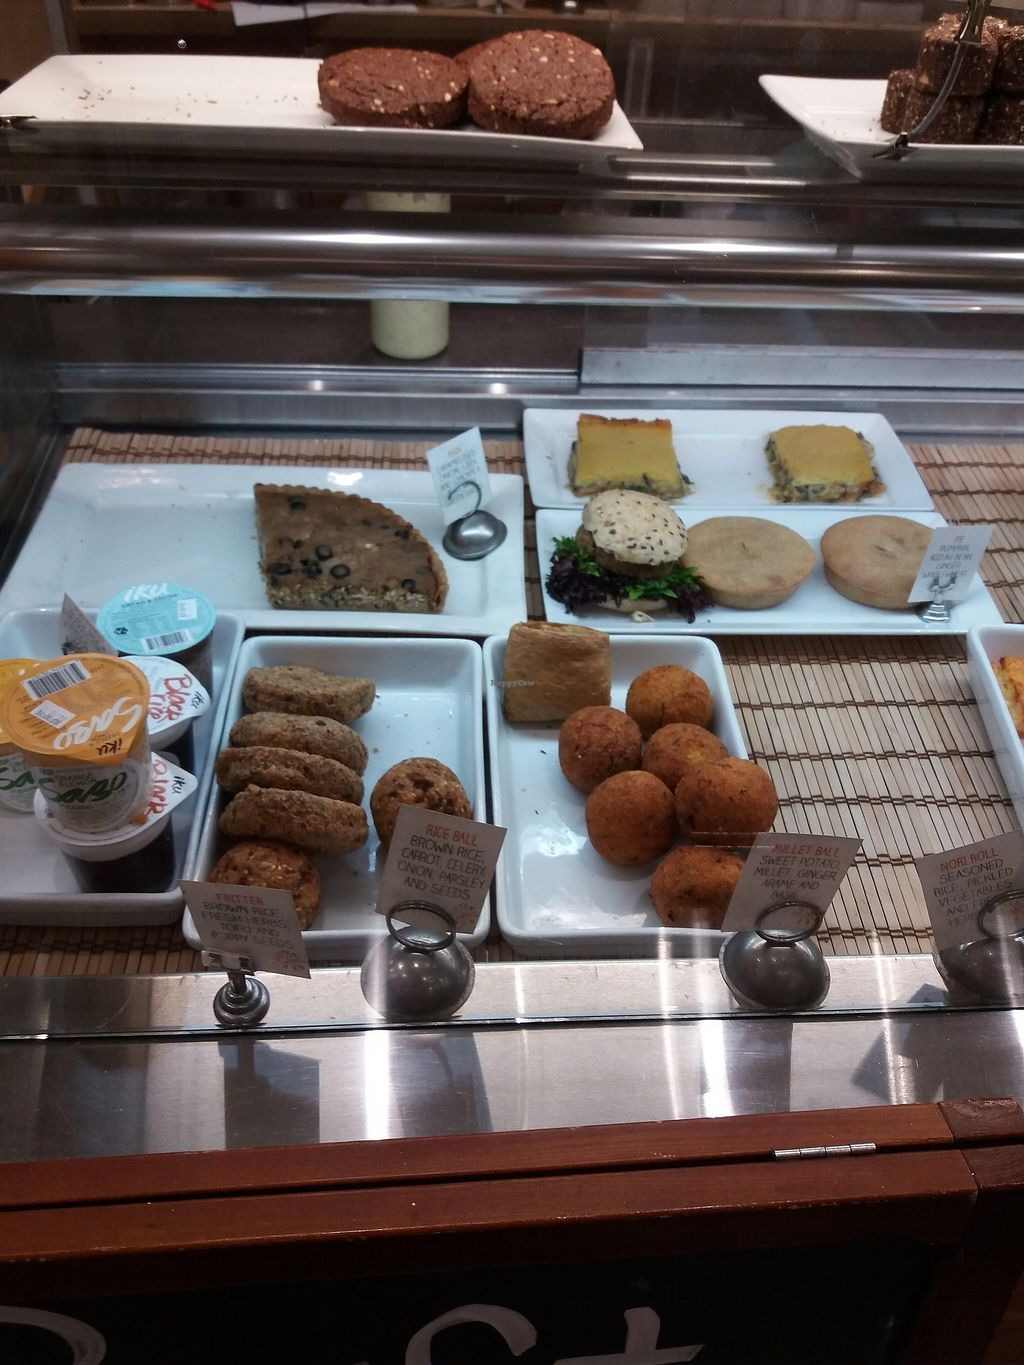 """Photo of Iku Wholefood Kitchen - Greenwood Plaza  by <a href=""""/members/profile/veganvirtues"""">veganvirtues</a> <br/>Some Iku dishes <br/> September 19, 2017  - <a href='/contact/abuse/image/23181/305958'>Report</a>"""